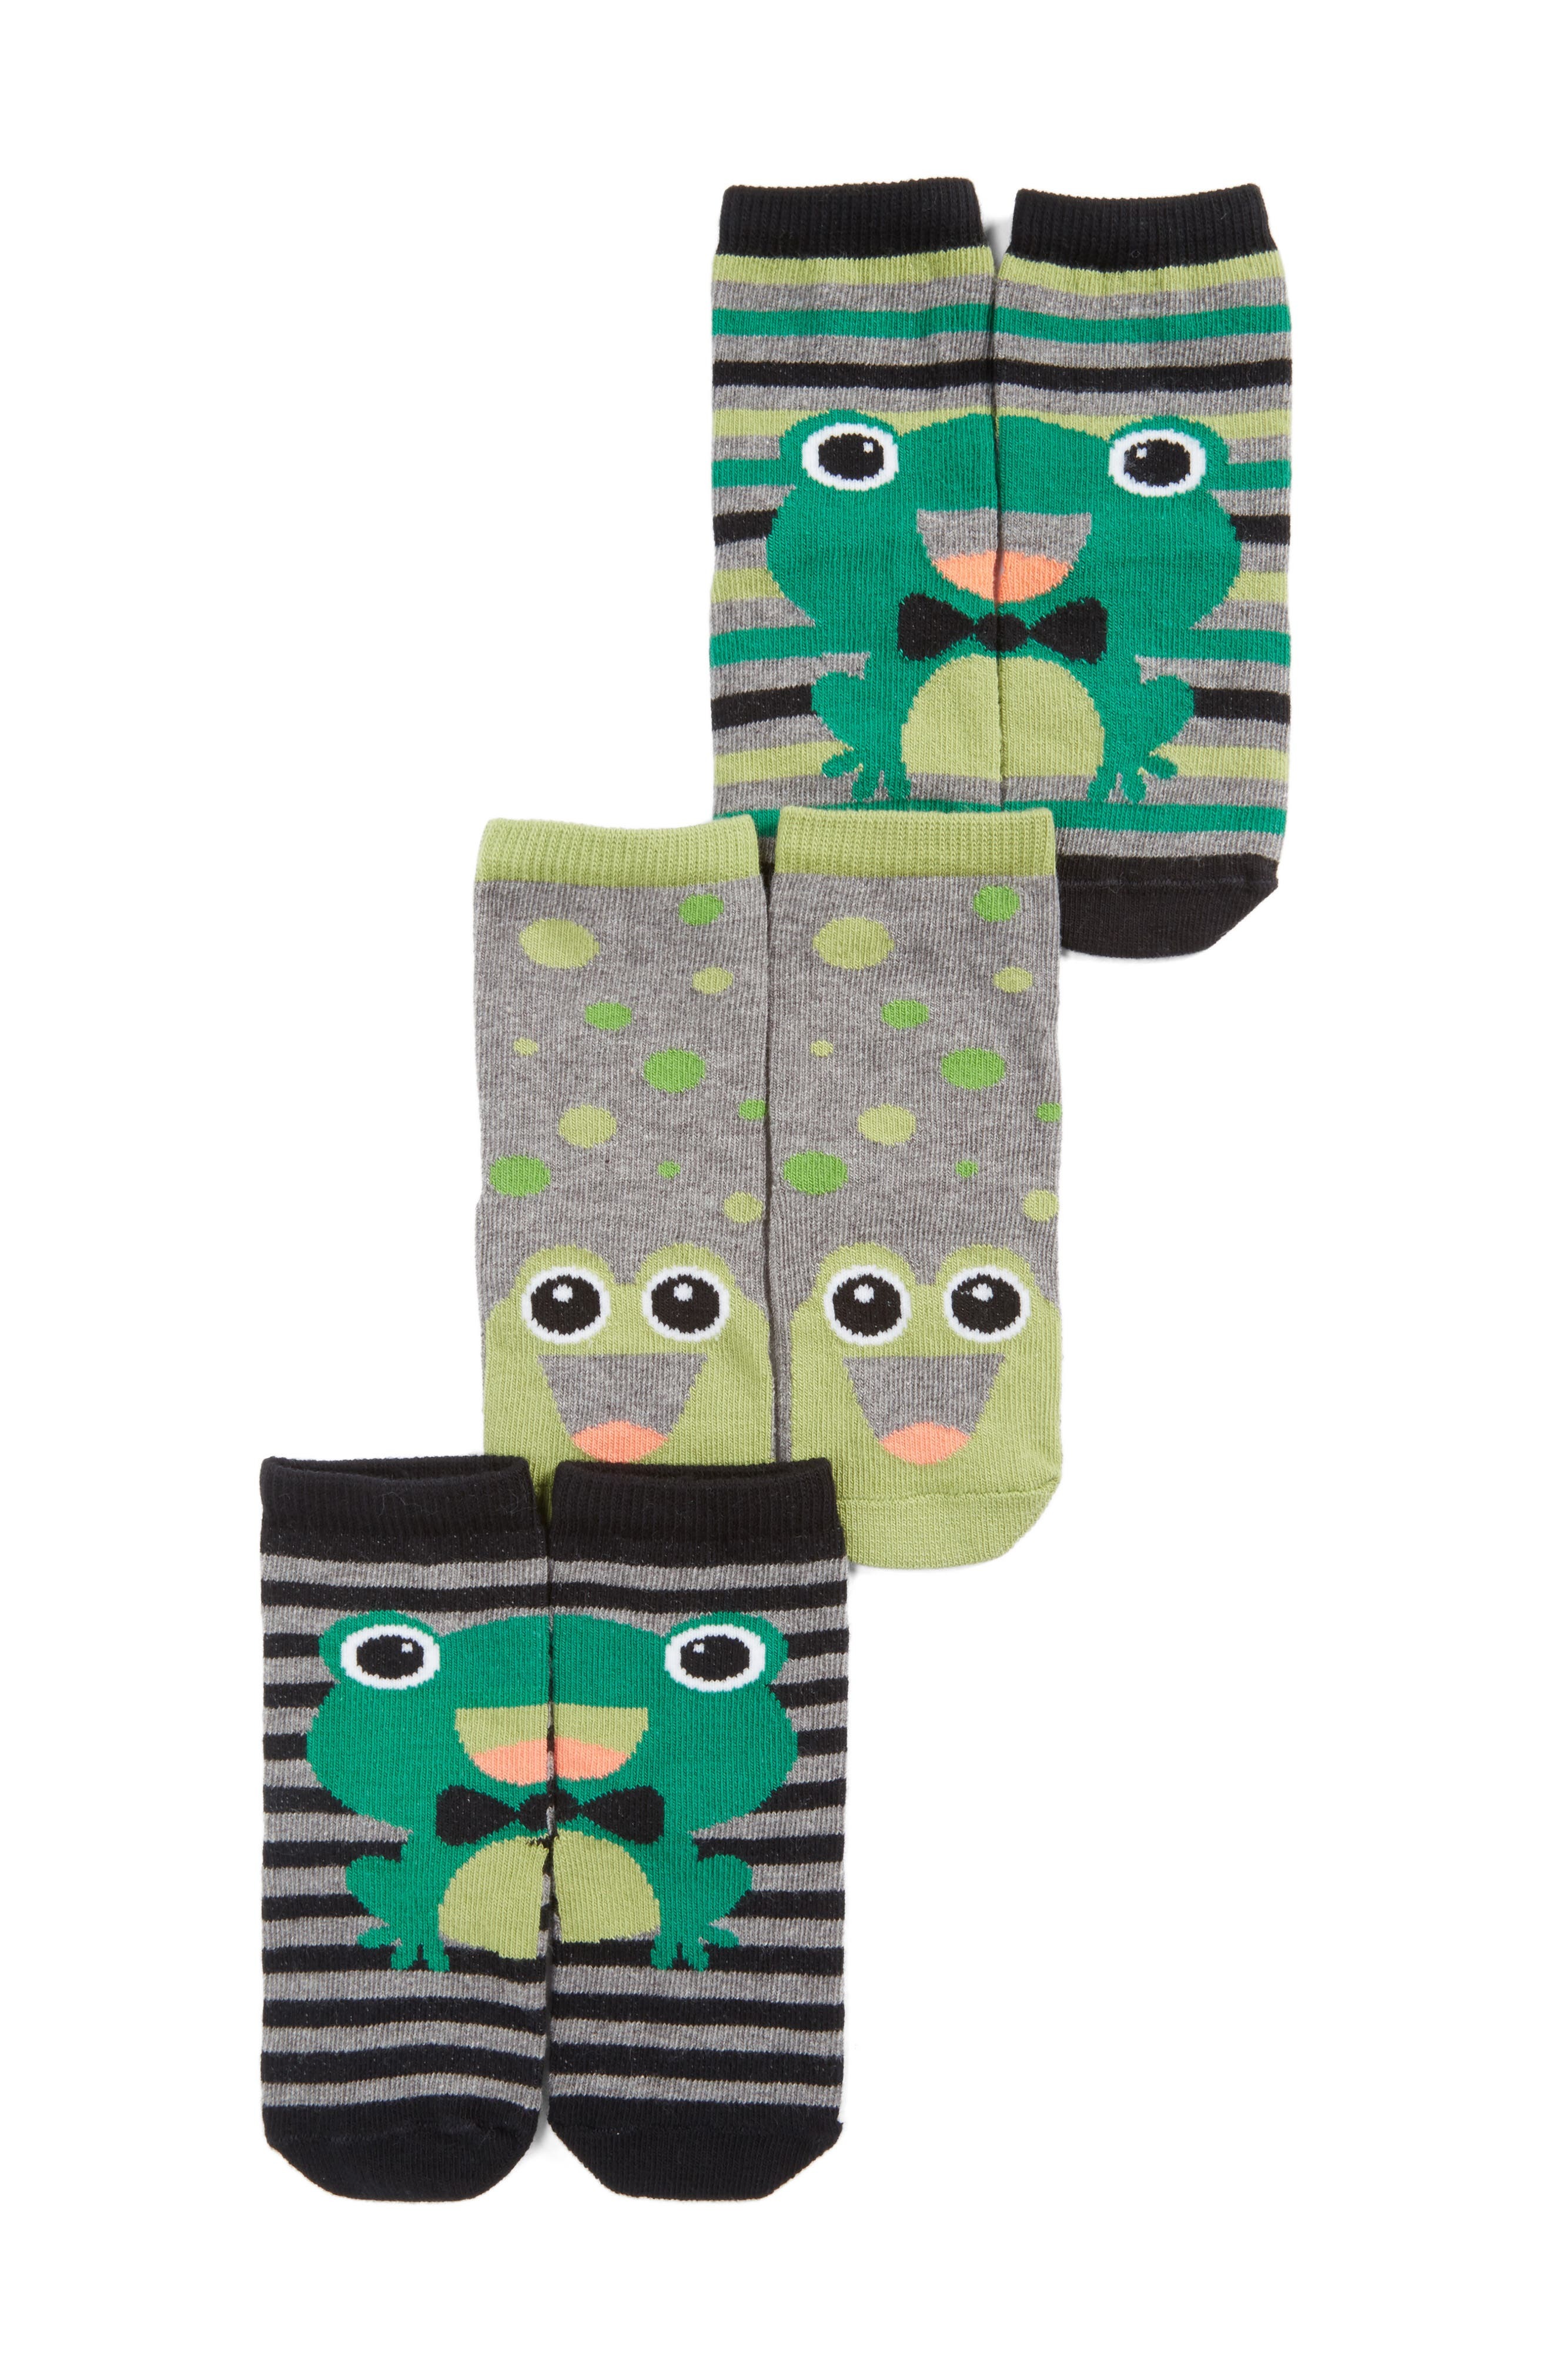 Alternate Image 1 Selected - Tucker + Tate Assorted 3-Pack Frog Socks (Baby)